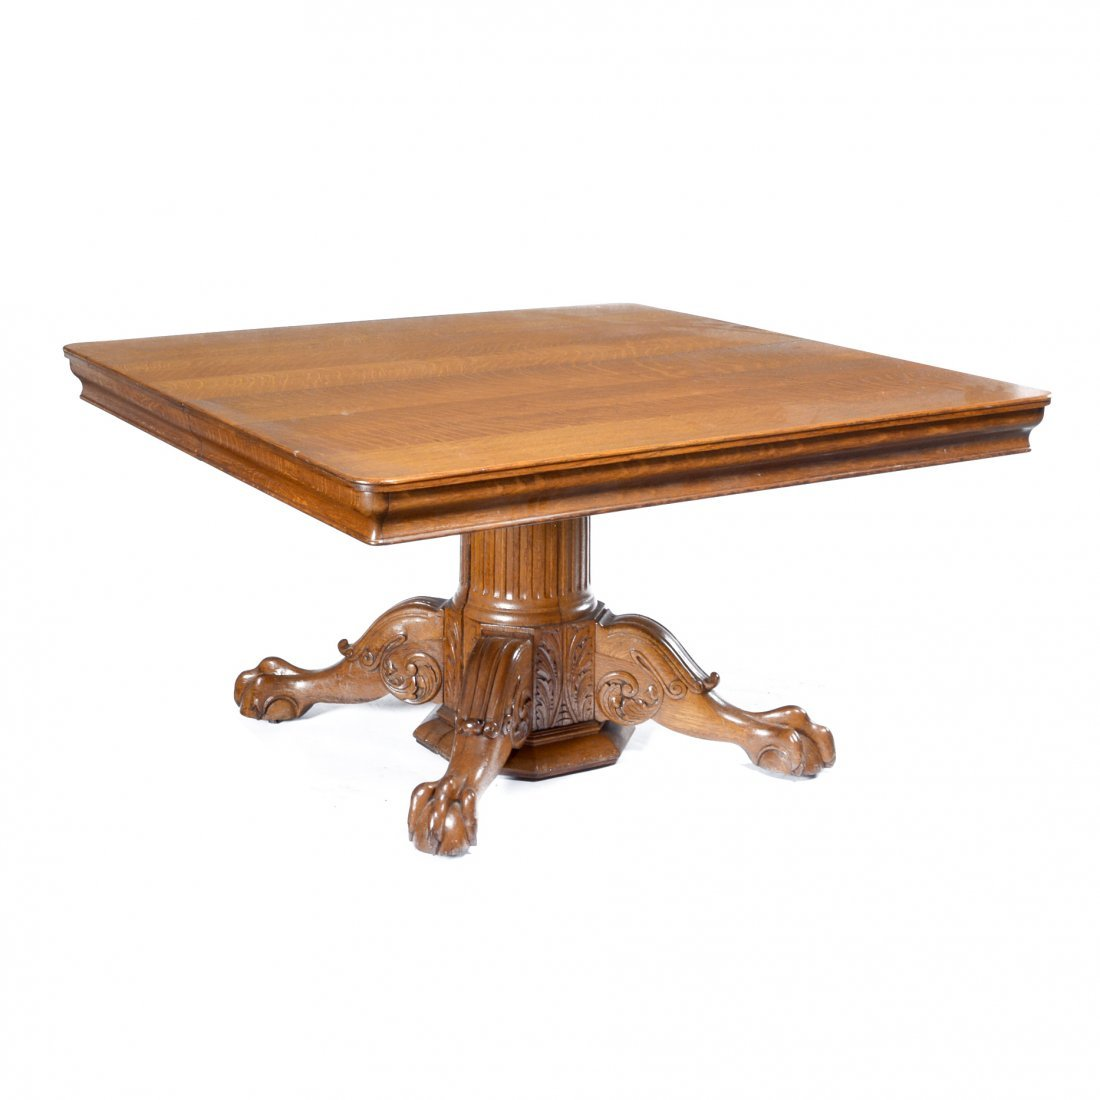 "American 54"" square oak table with two 11"" leaves"